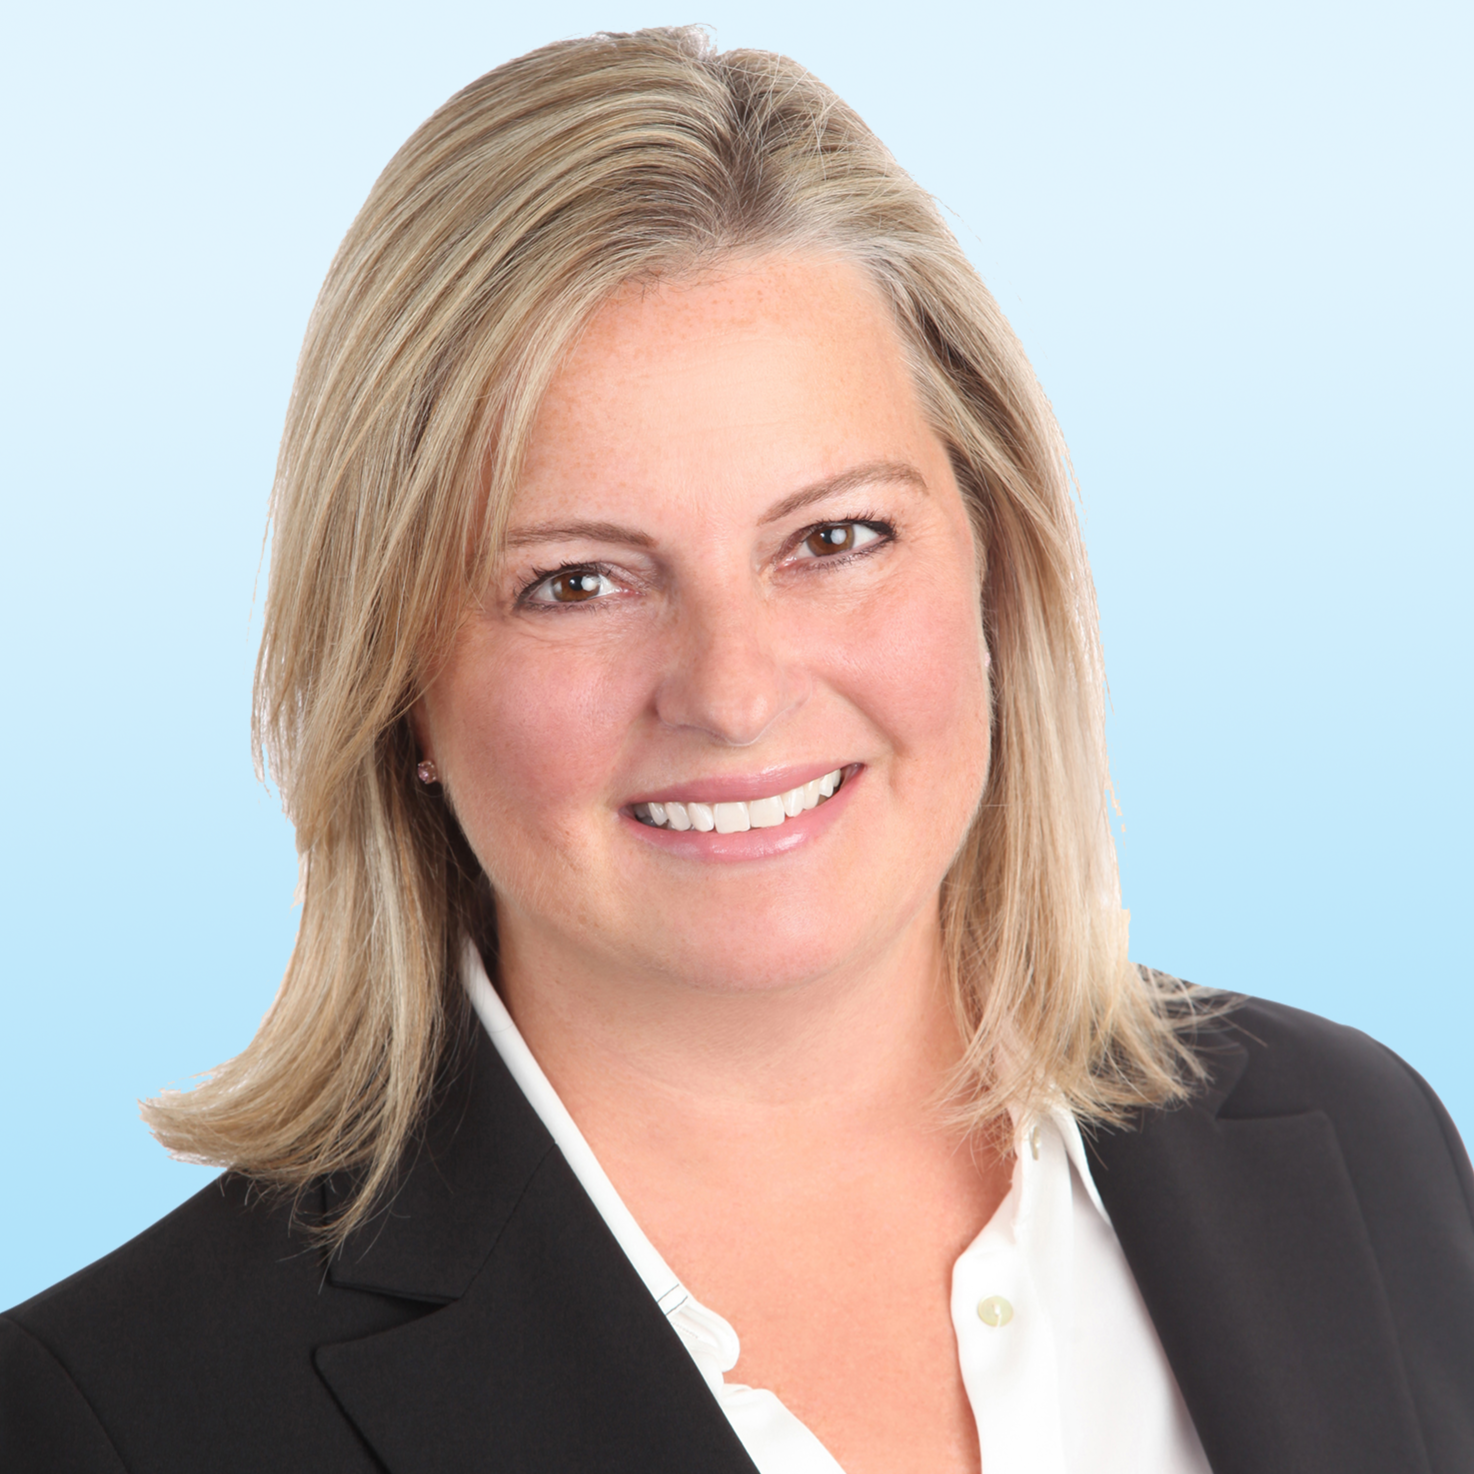 Andrea Wolf - National Managing Director, Strategy & Workplace Innovation, Colliers International